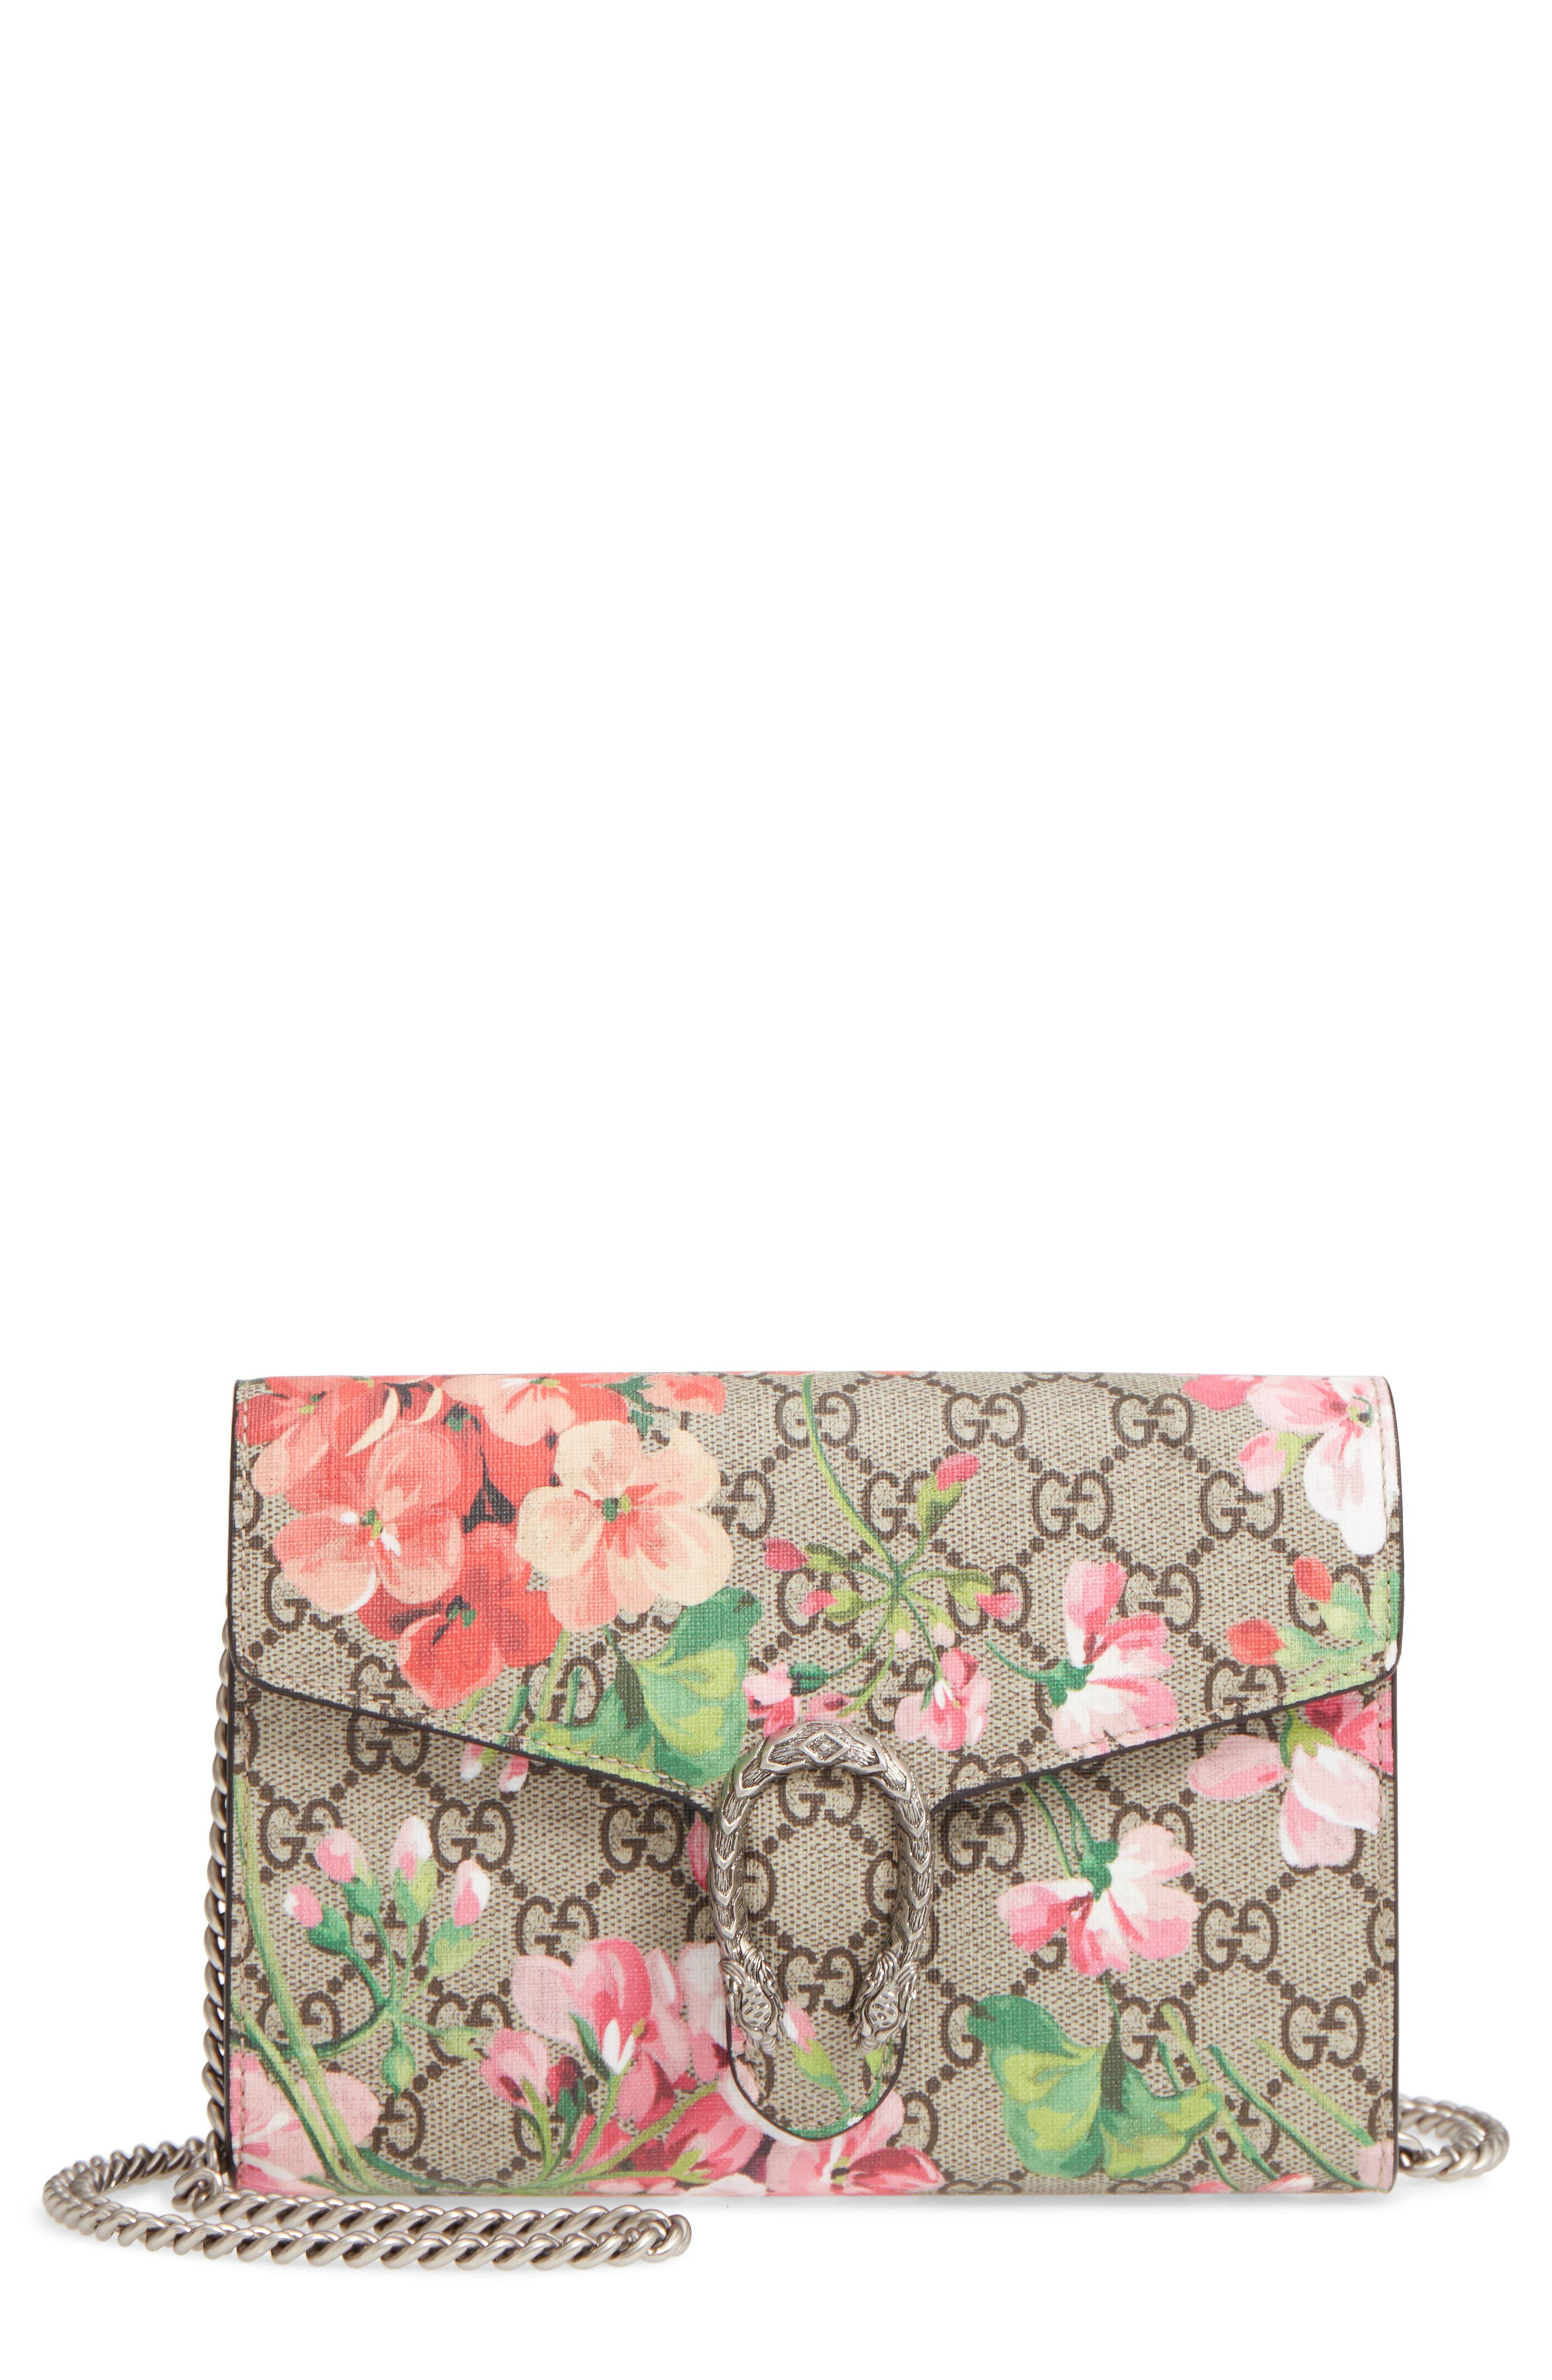 GUCCI Blooms GG Supreme Canvas Wallet on a Chain, Main, color, BEIGE EBONY/ DRY ROSE